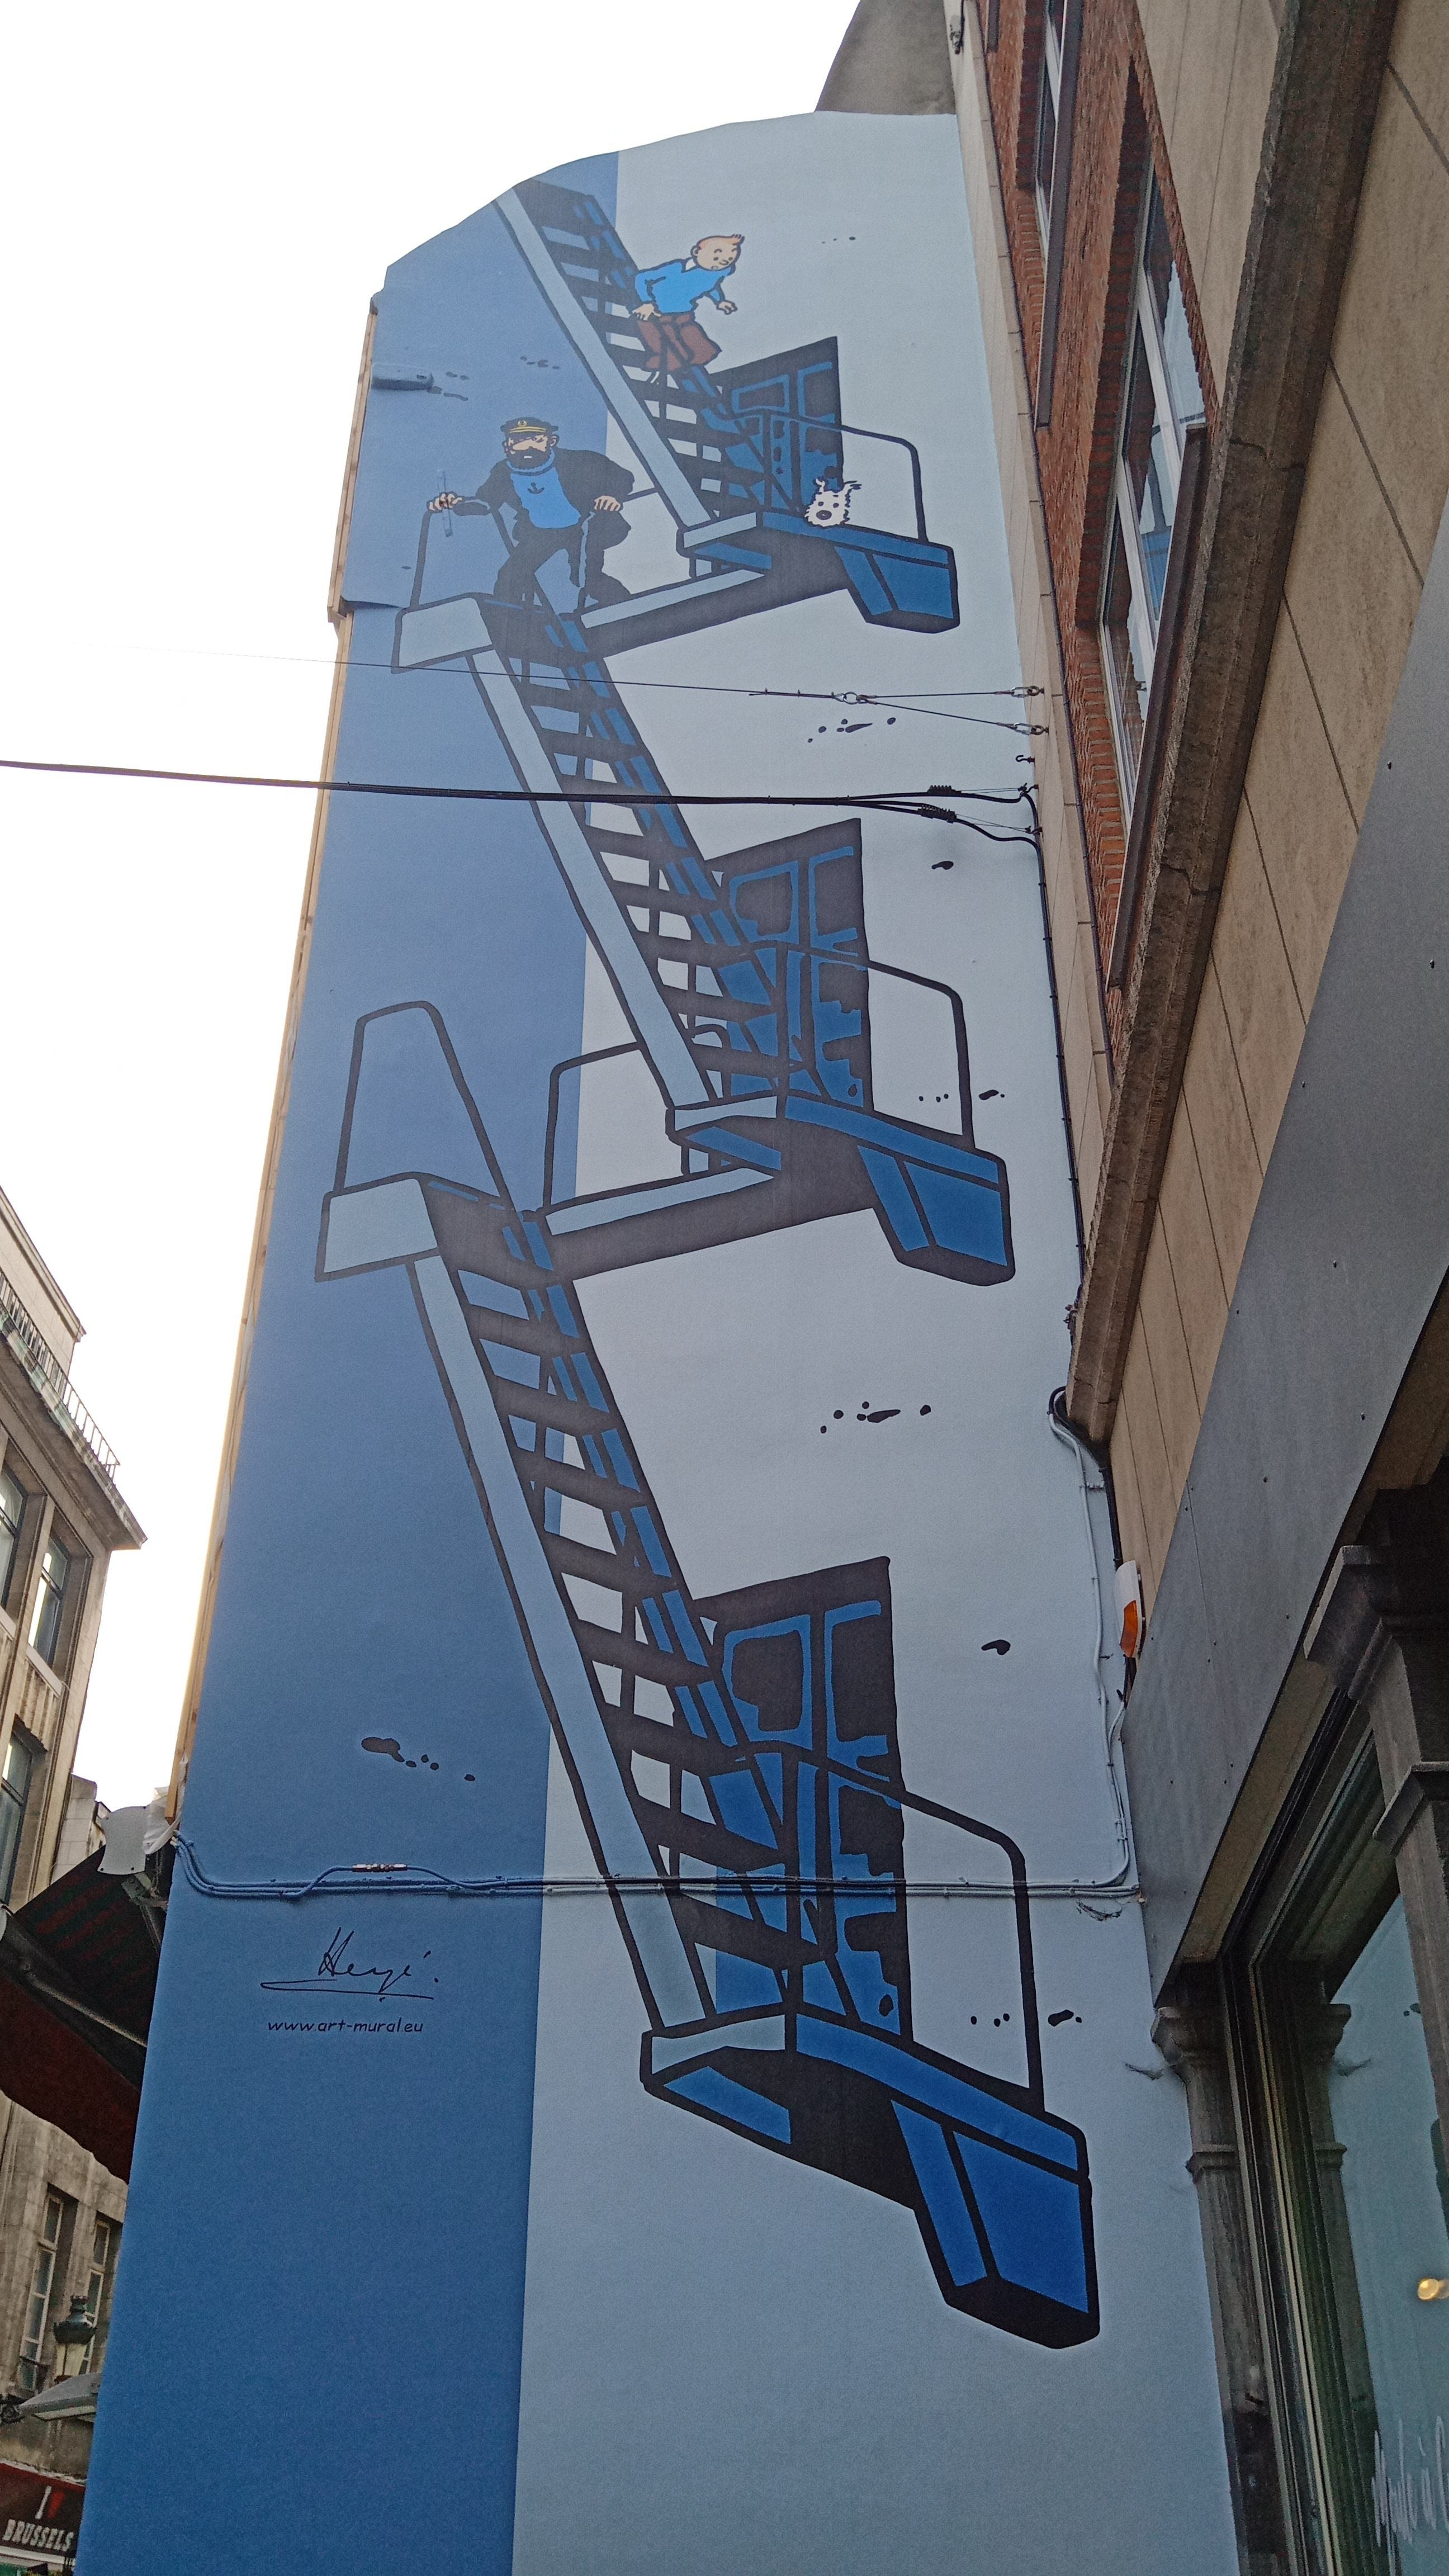 Mural Tintin Brussels